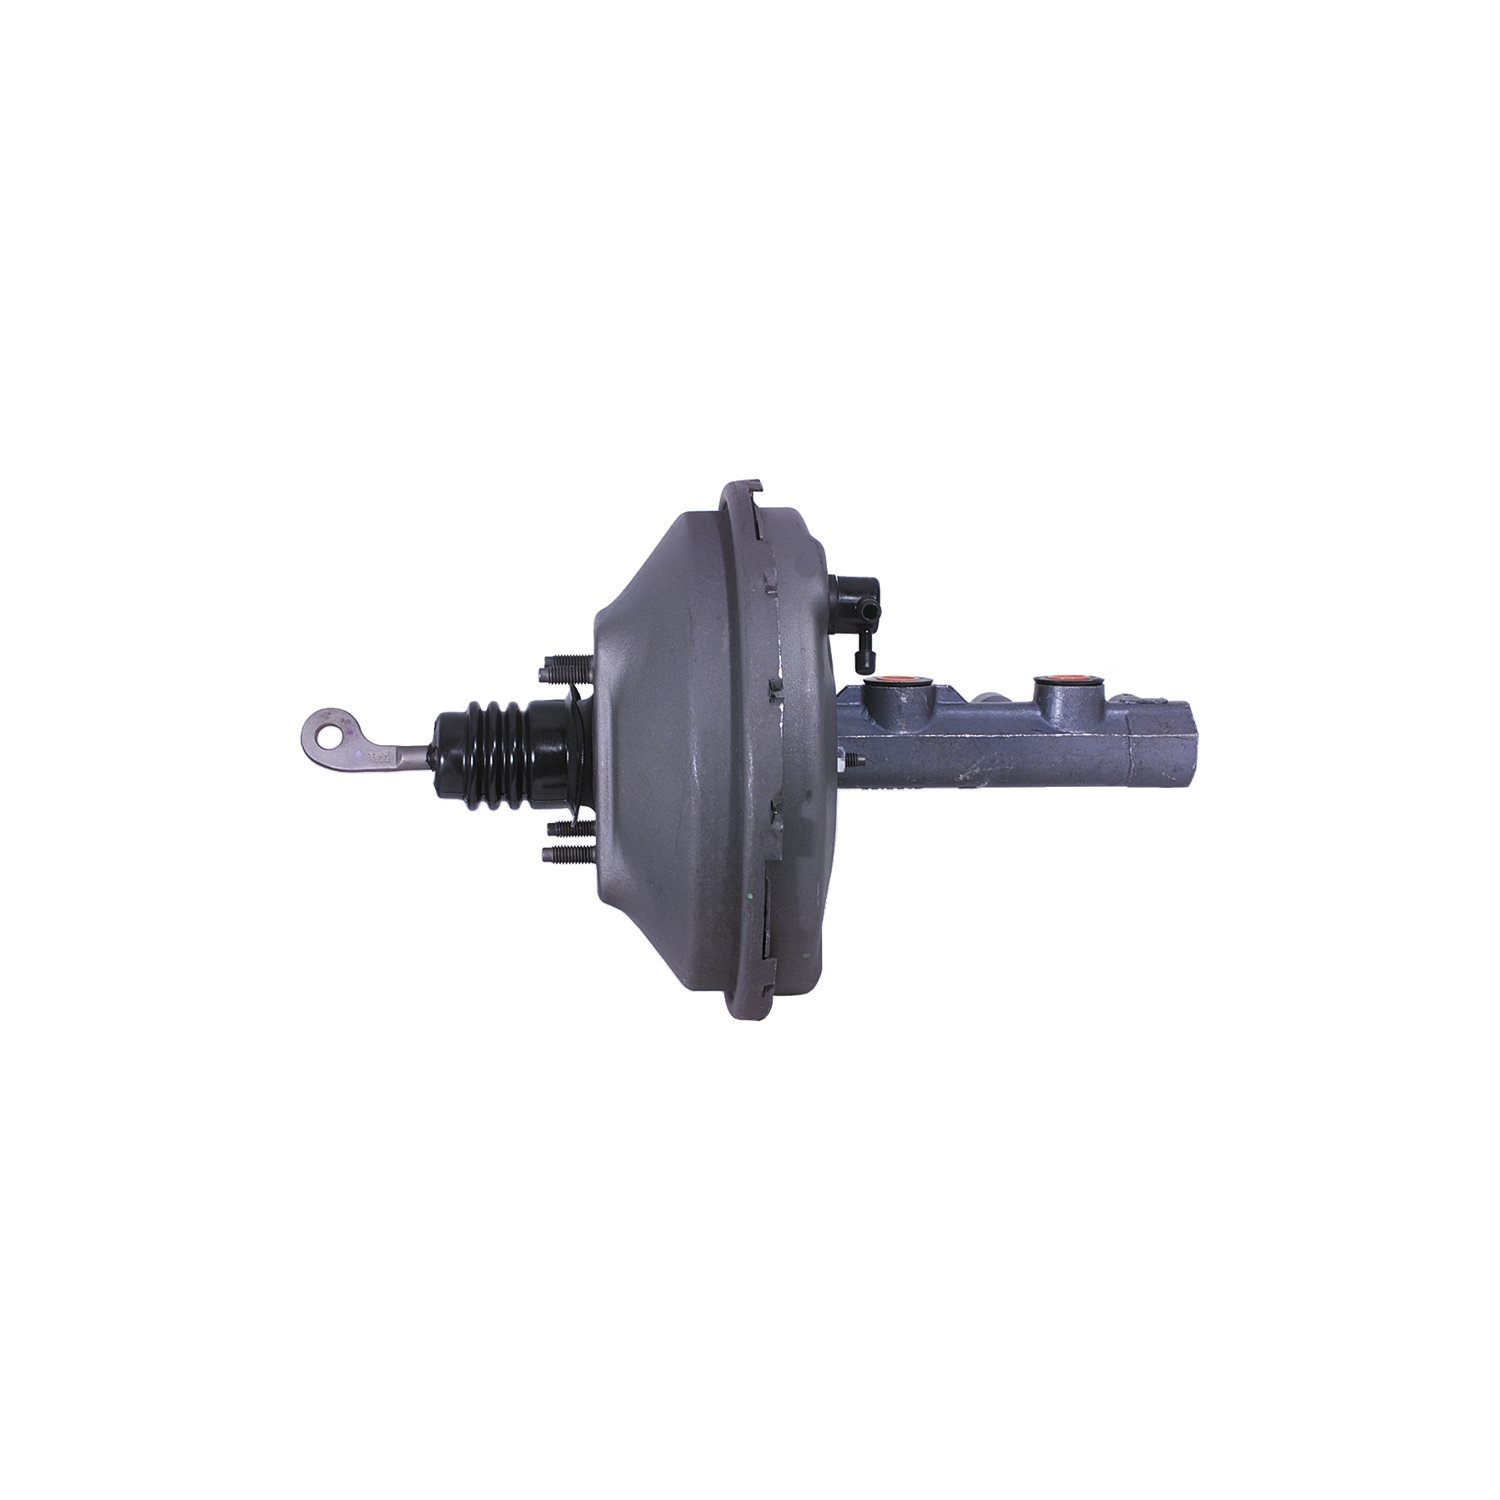 Cardone 50-3772 Remanufactured Power Brake Booster with Master Cylinder A1 Cardone